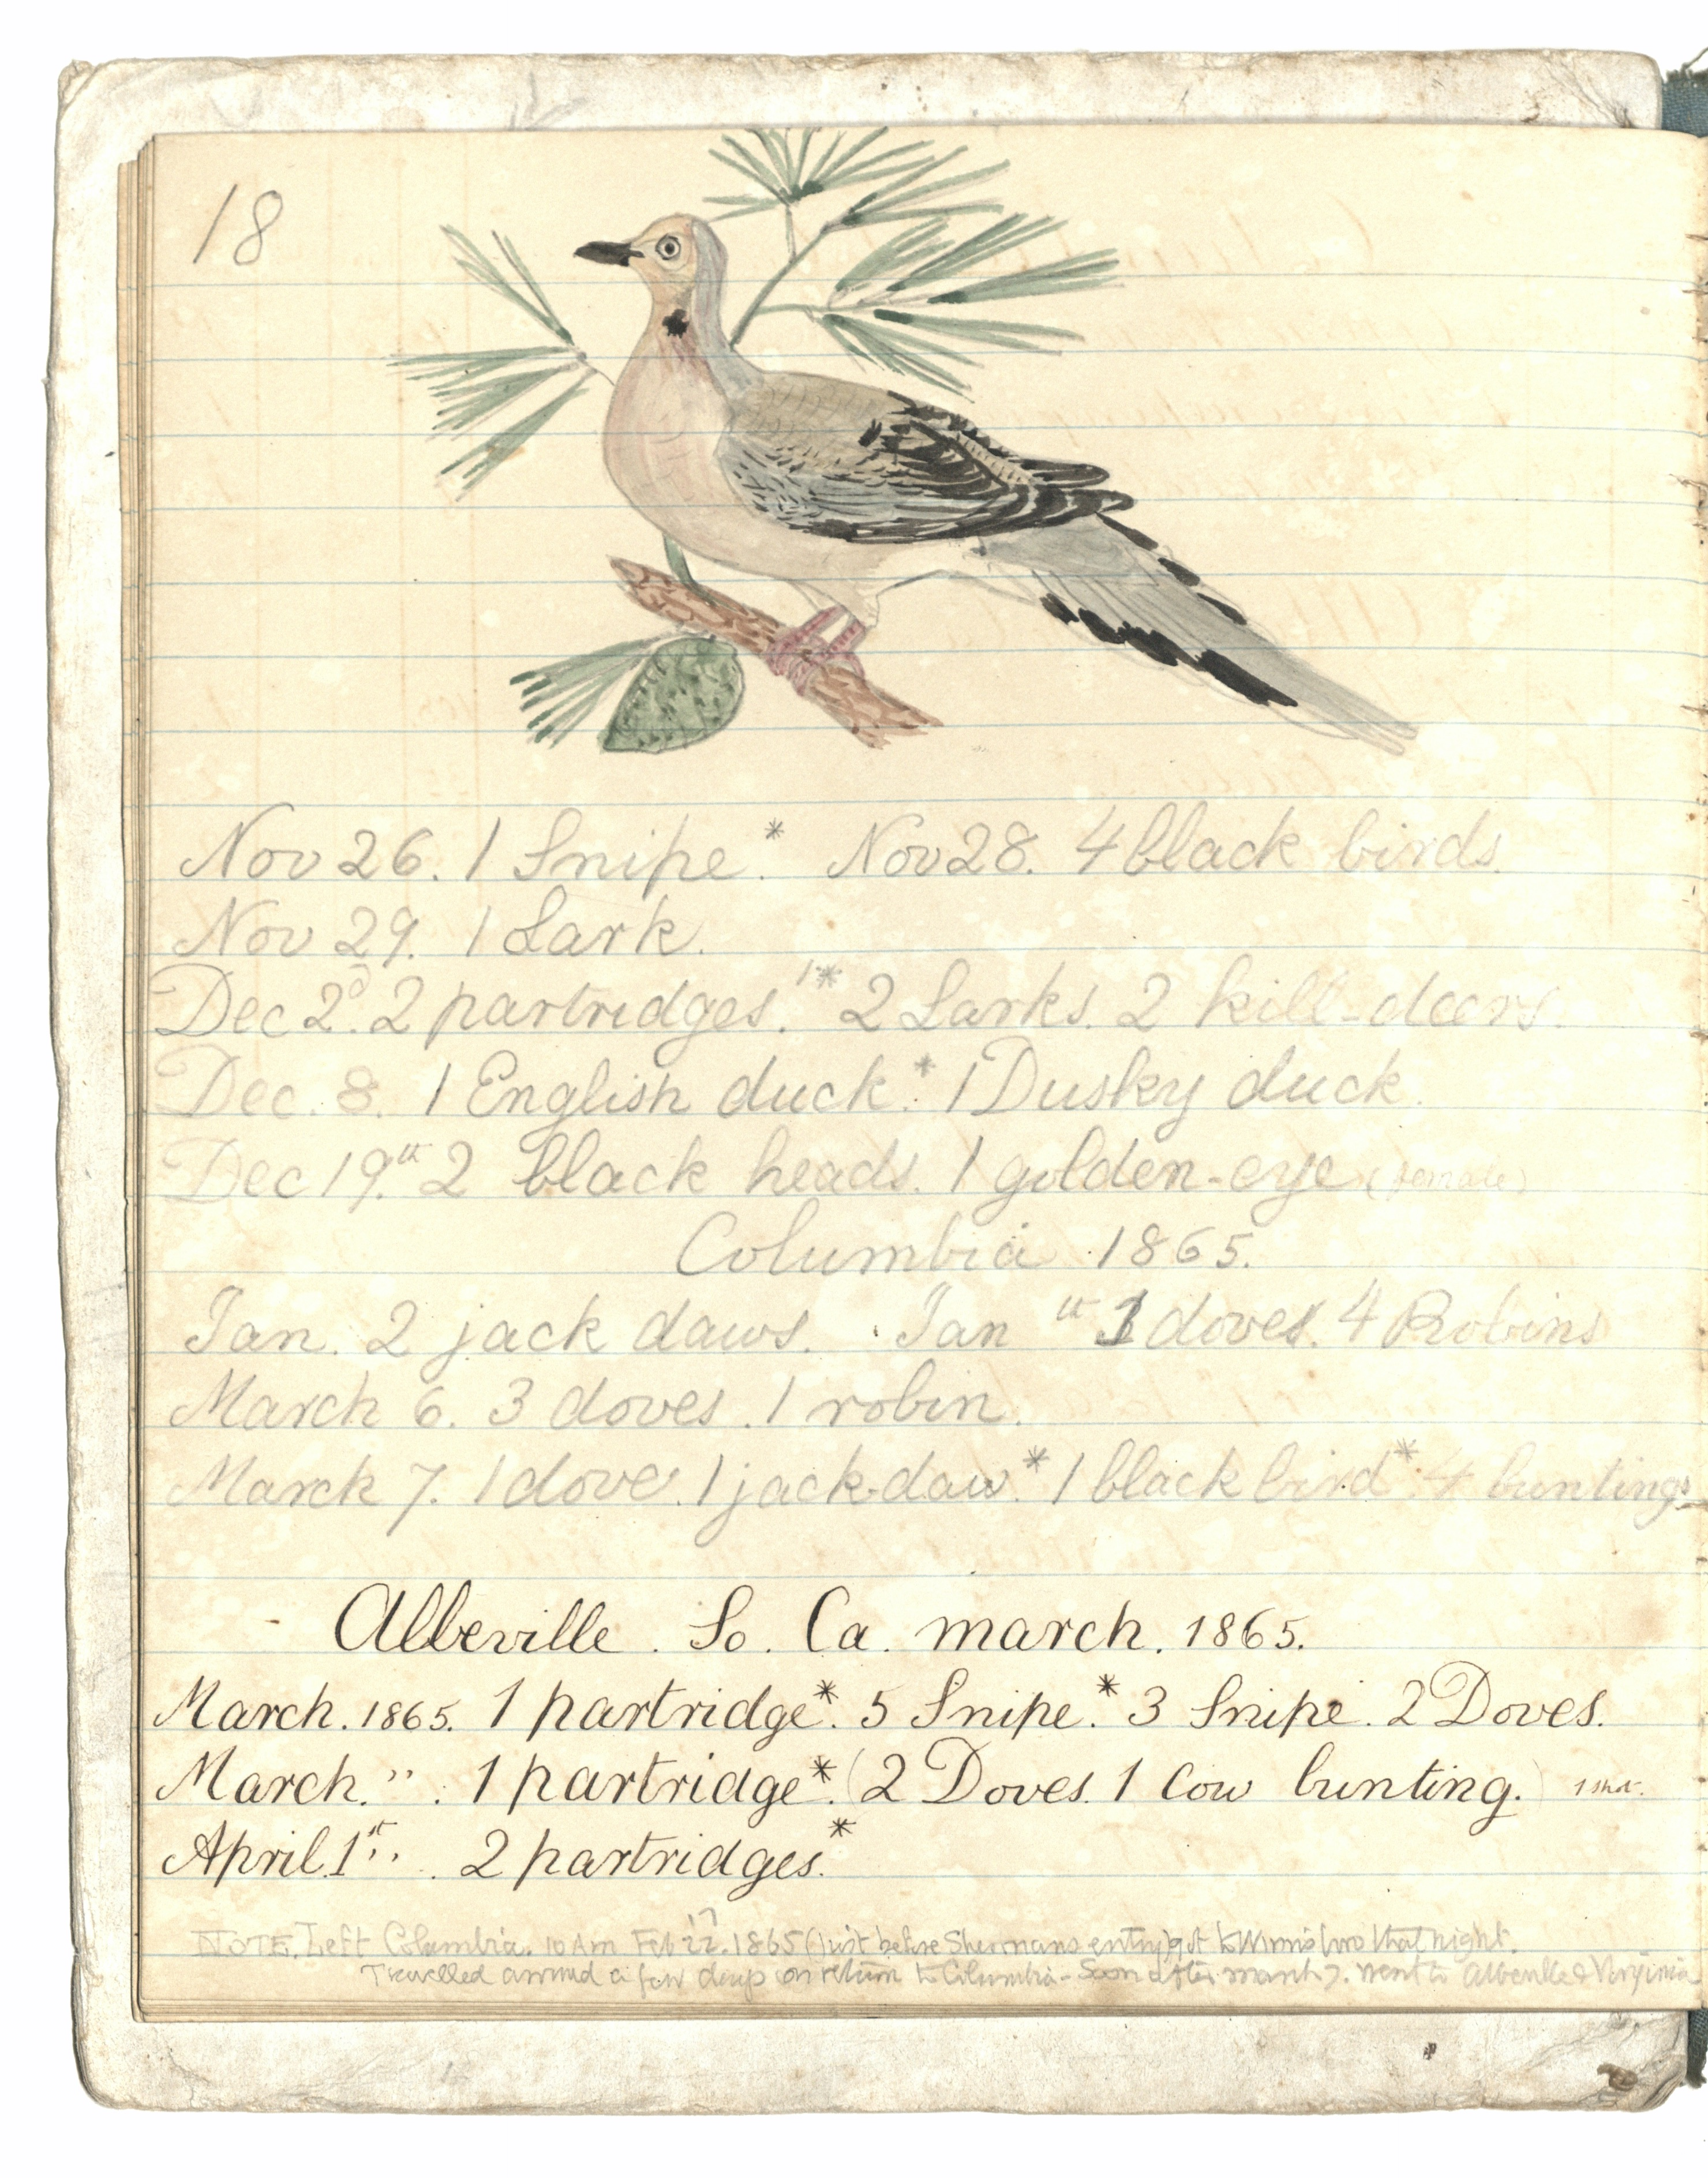 Langdon Cheves III Hunting Notes & Art, Page 21